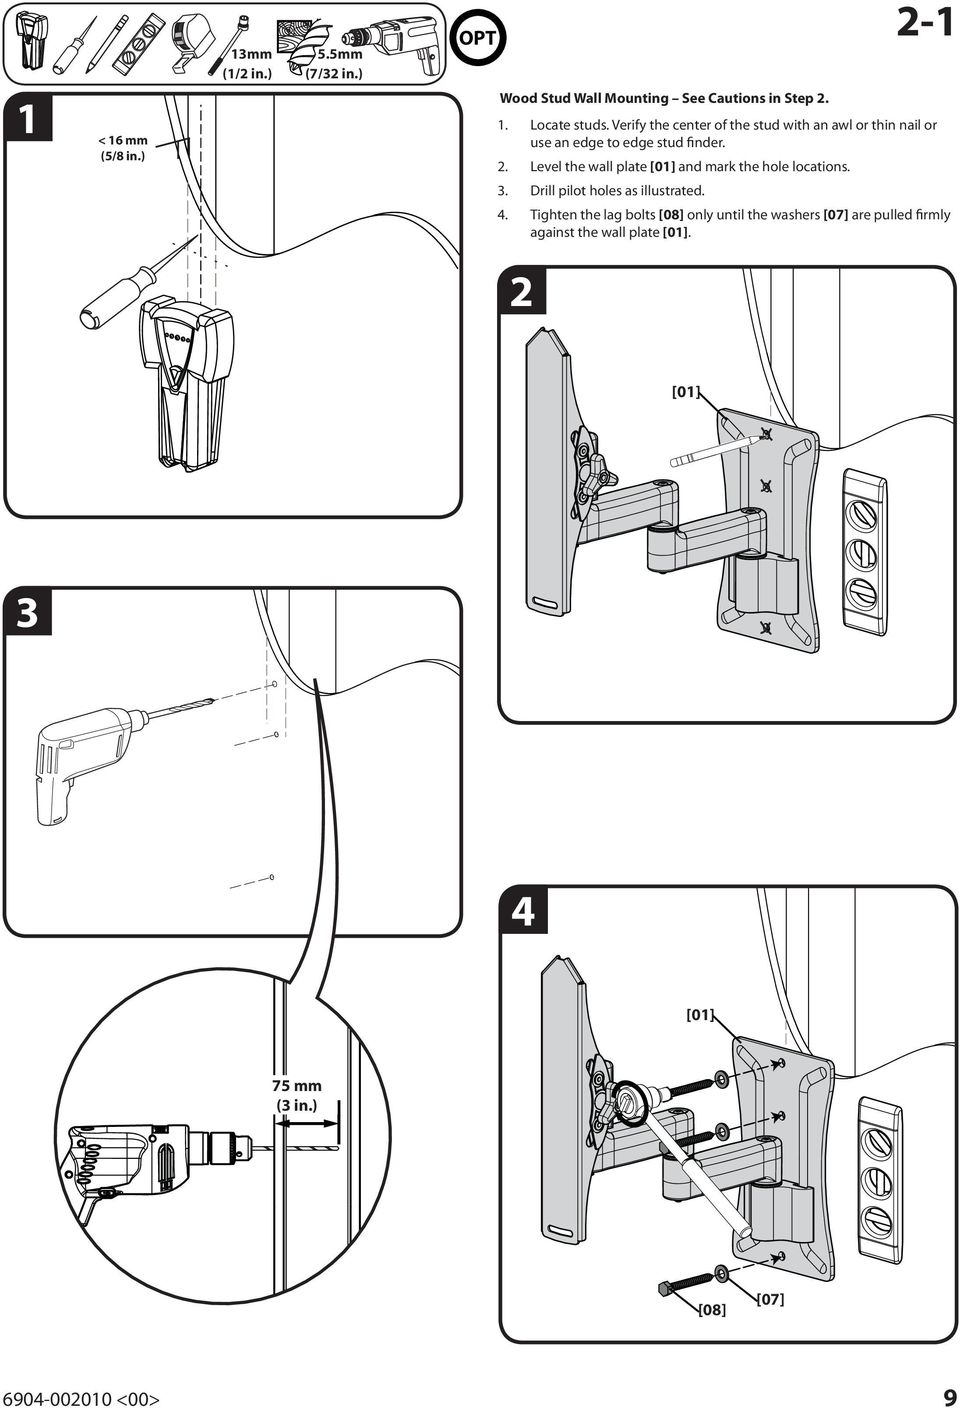 Level the wall plate and mark the hole locations. 3. Drill pilot holes as illustrated. 4.